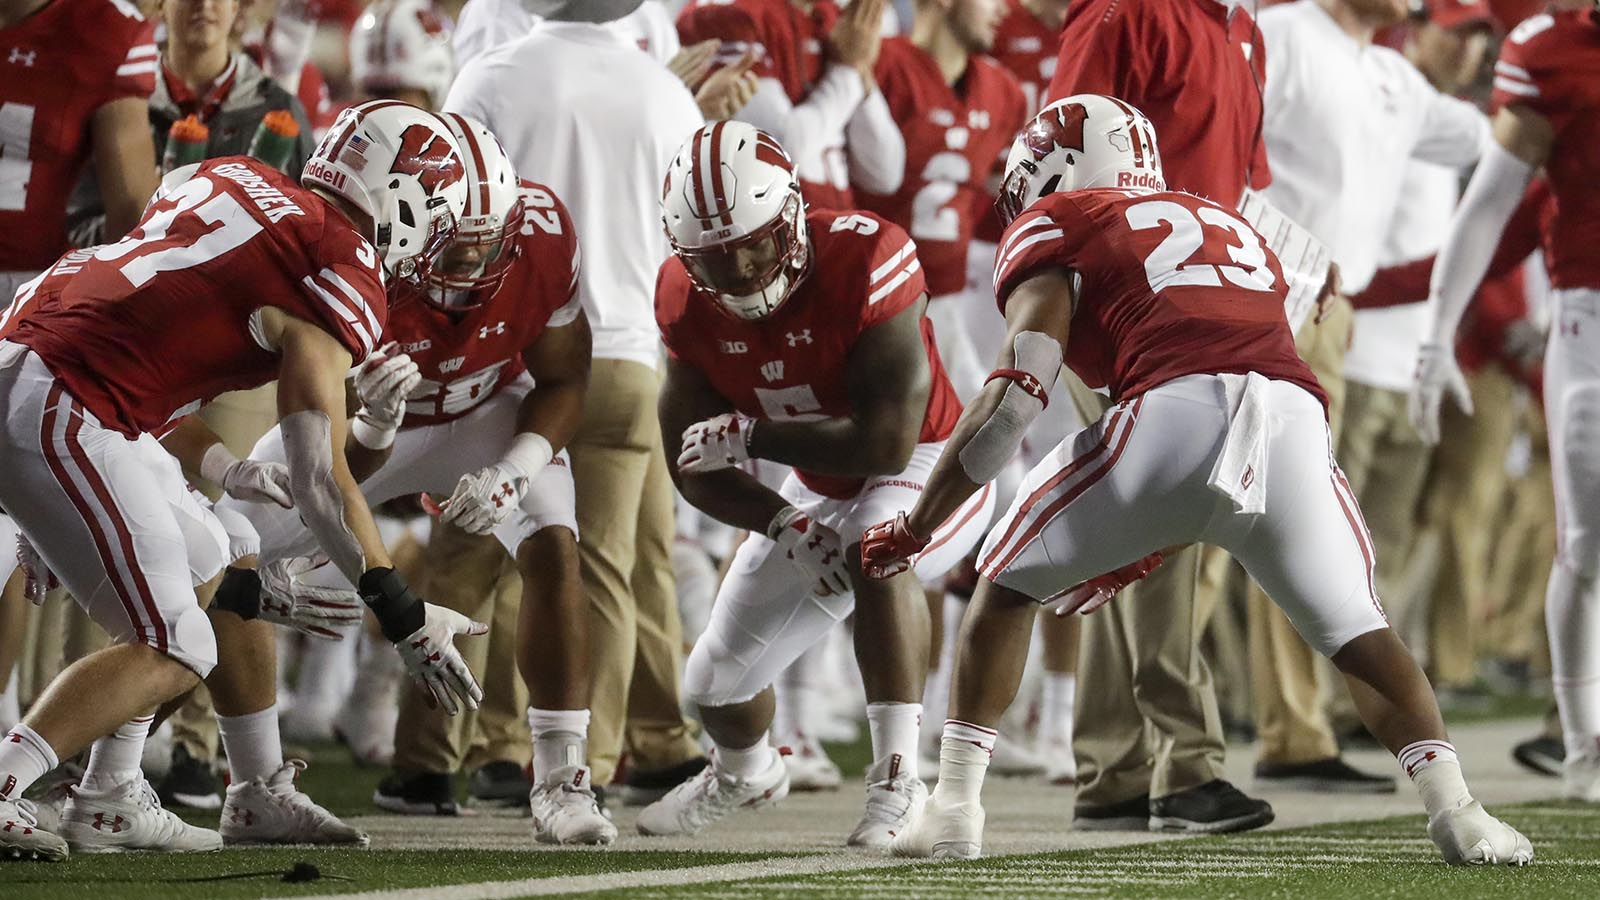 Wisconsin's Jonathan Taylor celebrates his touchdown run with his Badgers. teammates during the first half against Nebraska. of an NCAA college football game against Nebraska Saturday, Oct. 6, 2018, in Madison, Wis. (AP Photo/Morry Gash)